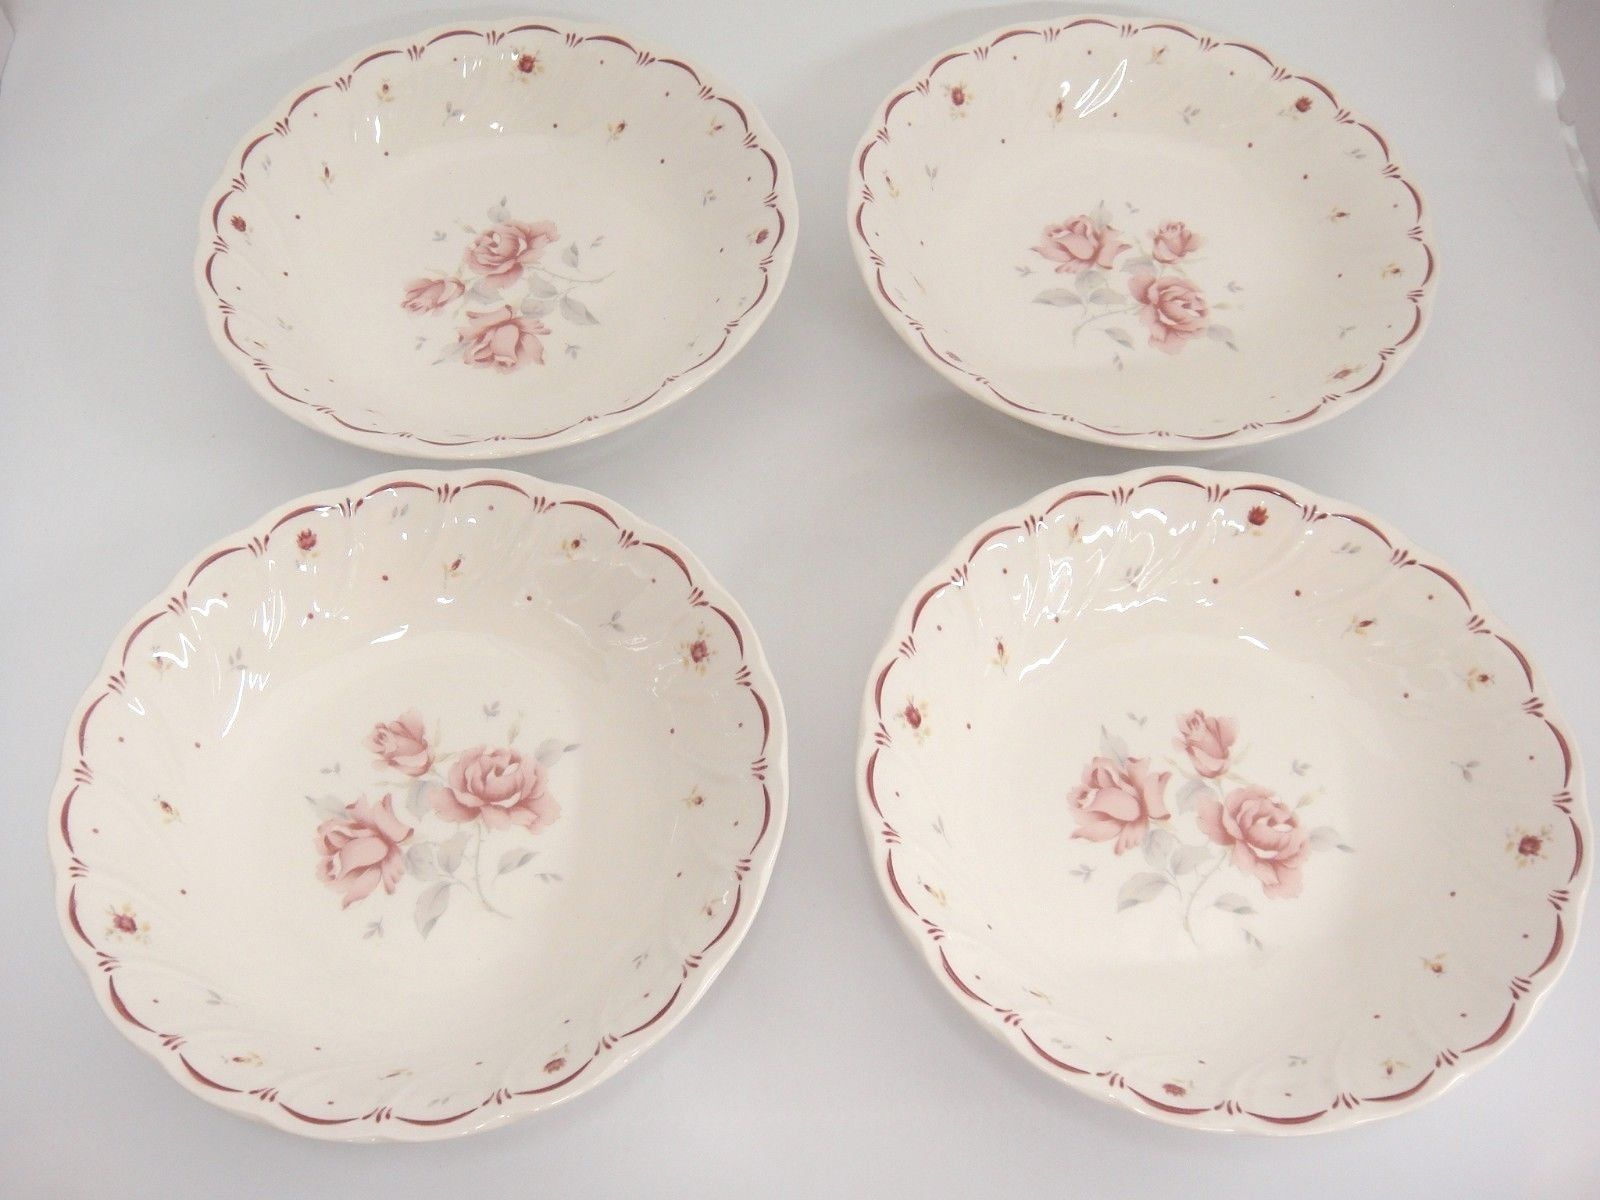 """Nikko Tableware Full Bloom Coupe Soup Bowls 7.75"""" Lot of 4 Pink Roses Scarce"""